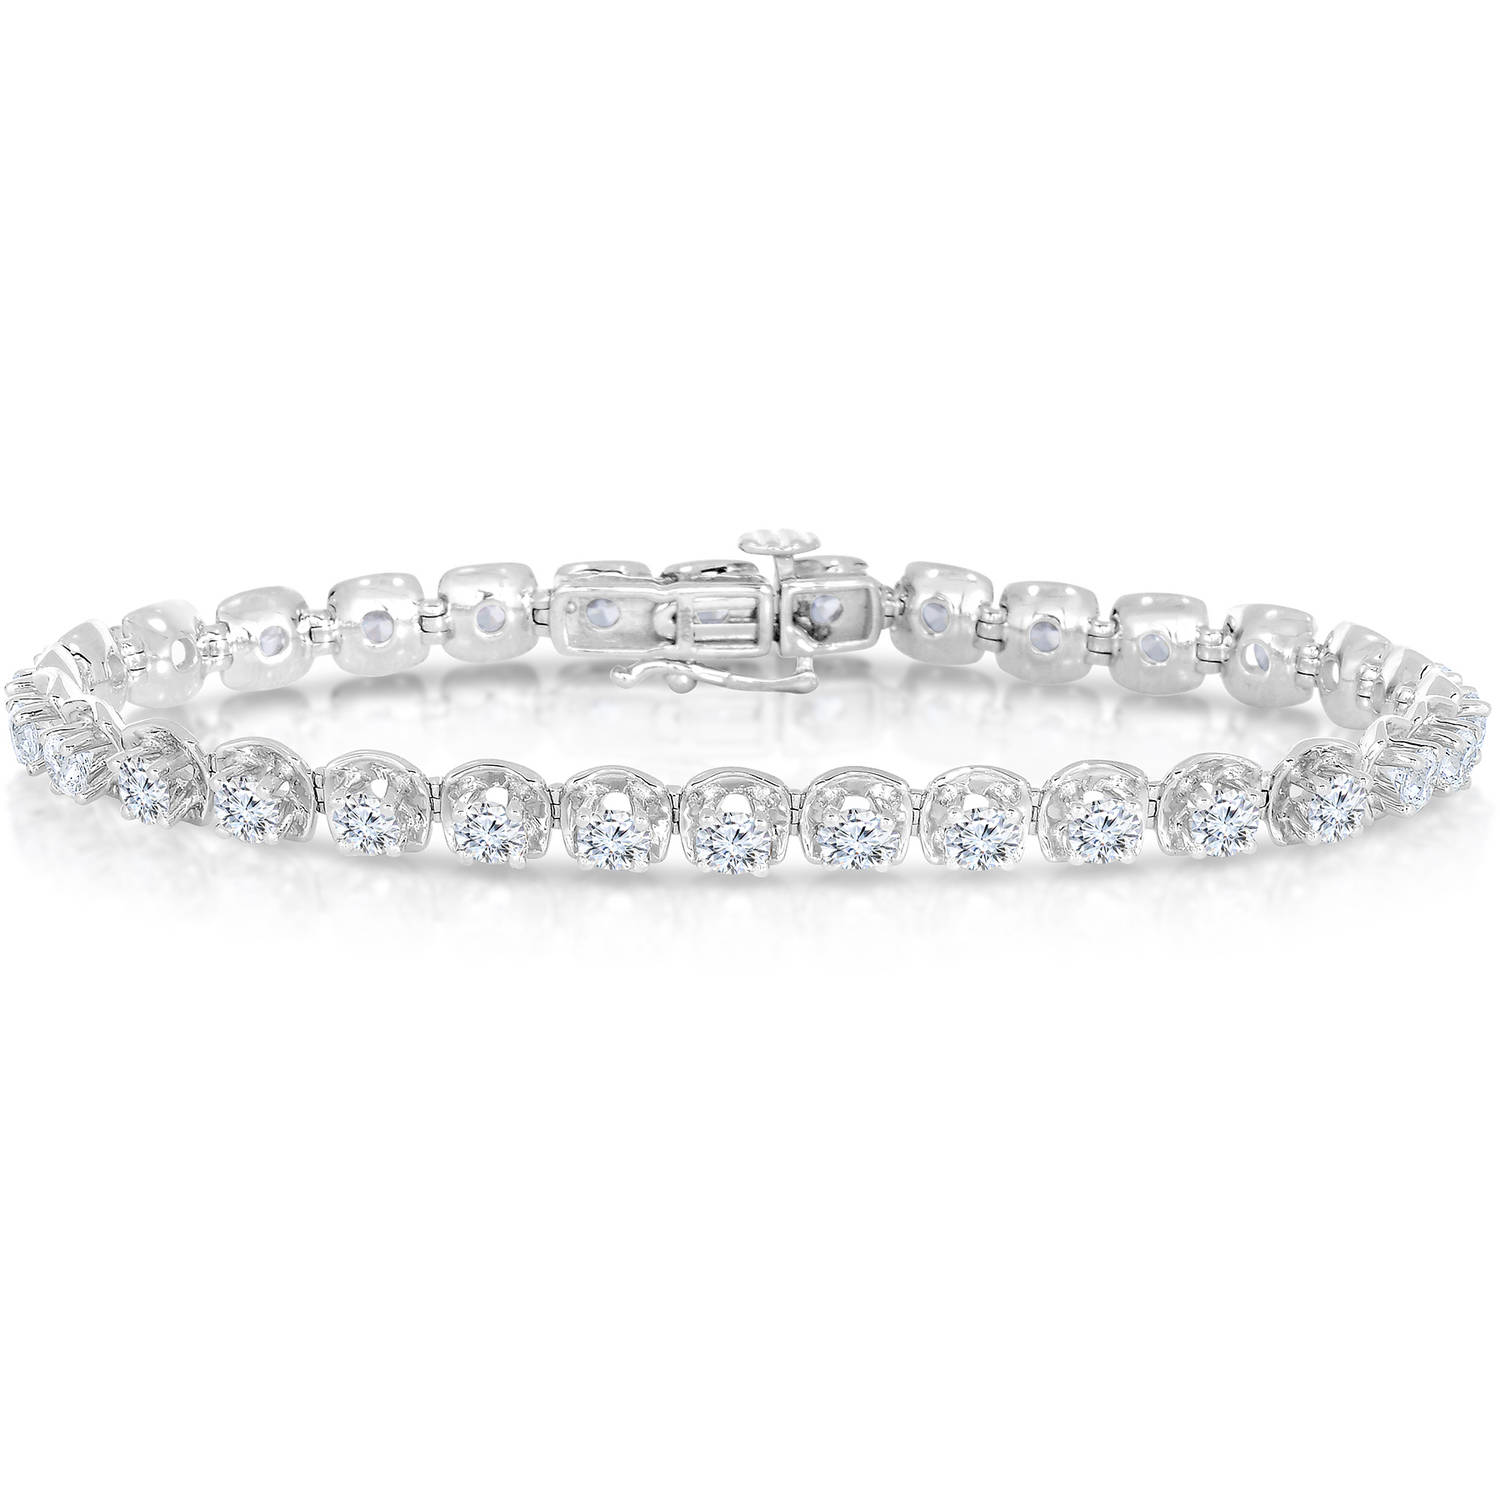 2 Carat T.W. Round-Cut White Diamond 14kt White Gold Bracelet with Reflection Styles Settings by Generic